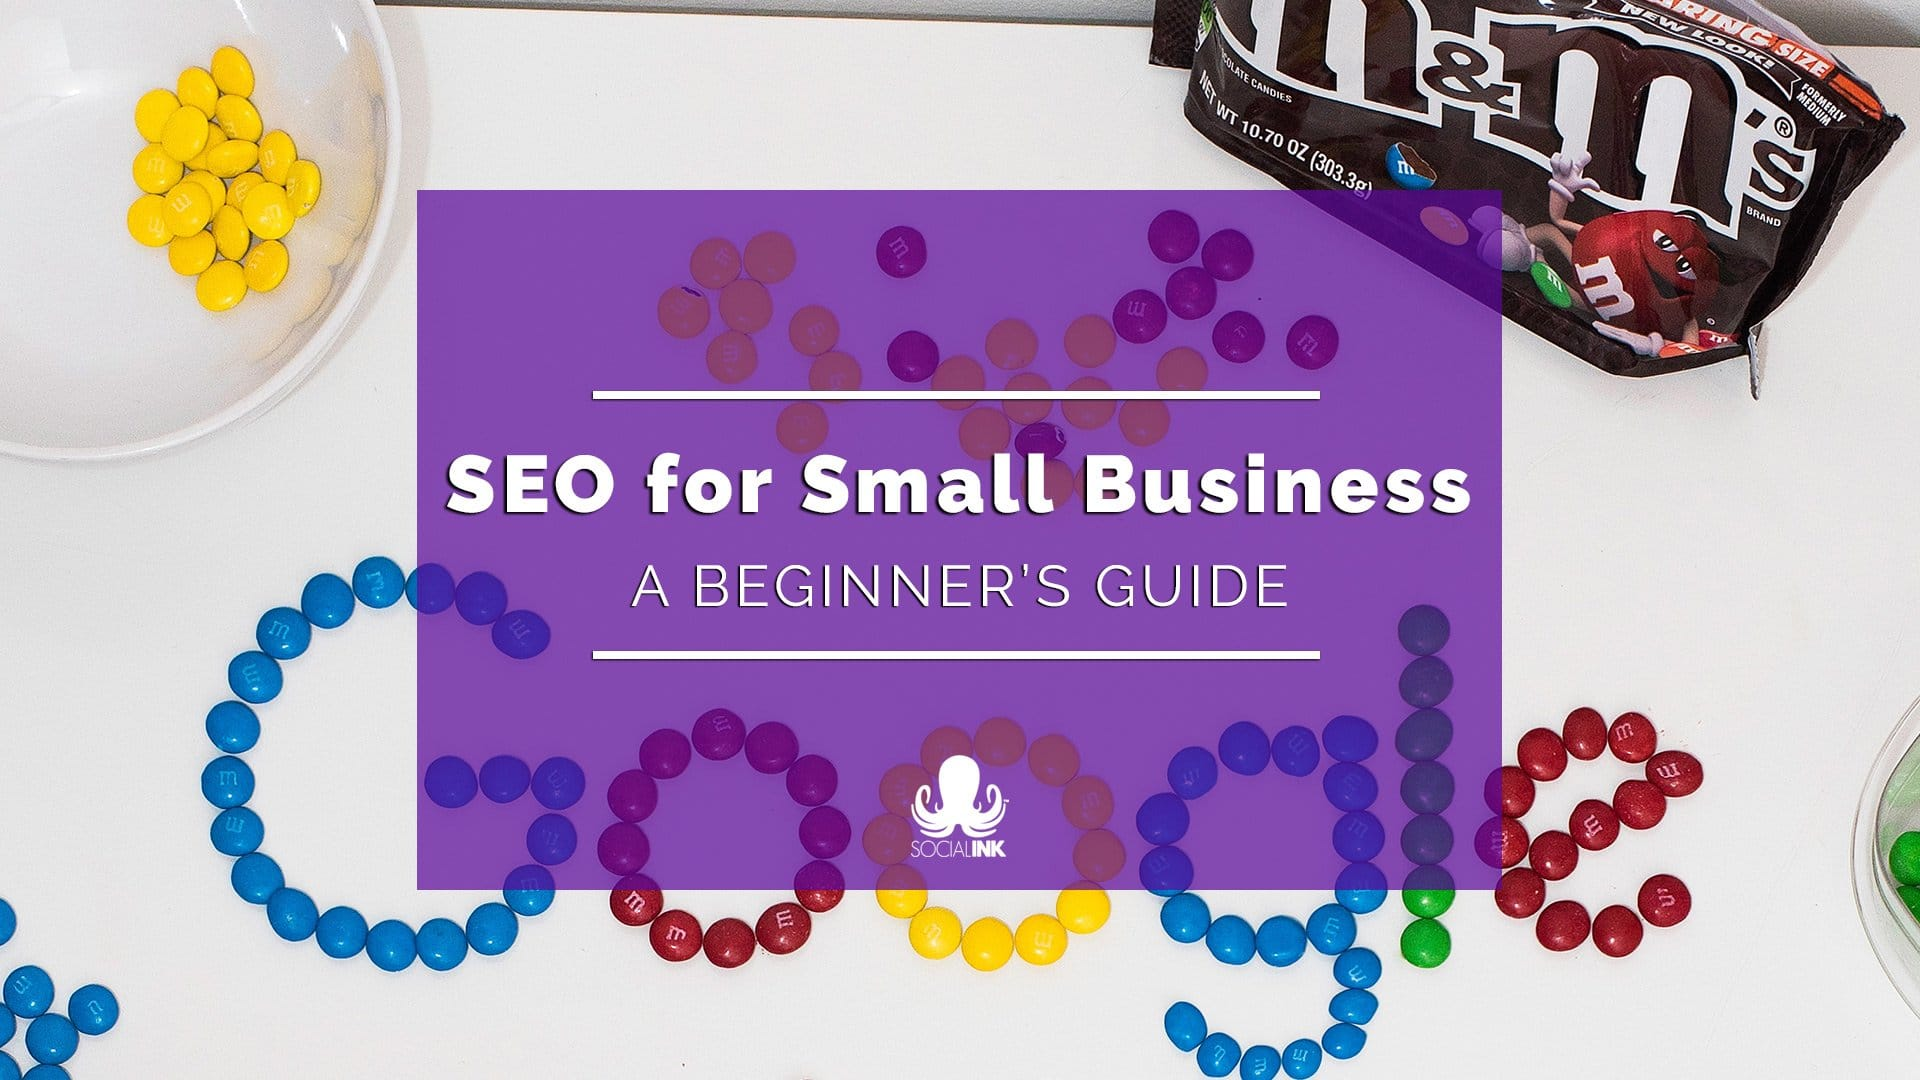 SEO for Small Business: Search Engine Optimisation Basics